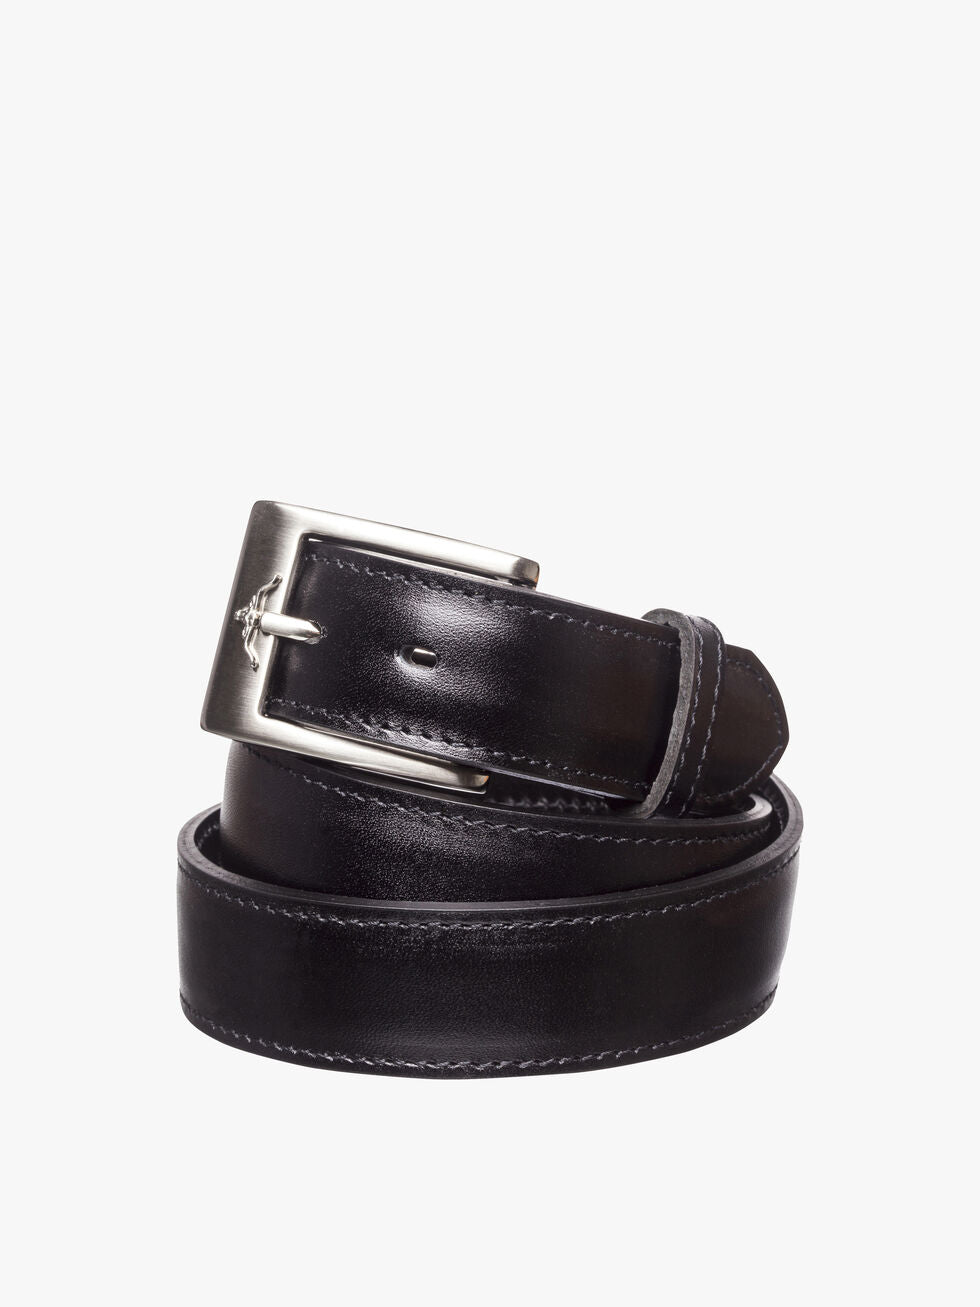 R.M. Williams Mens Dress Belt - Black